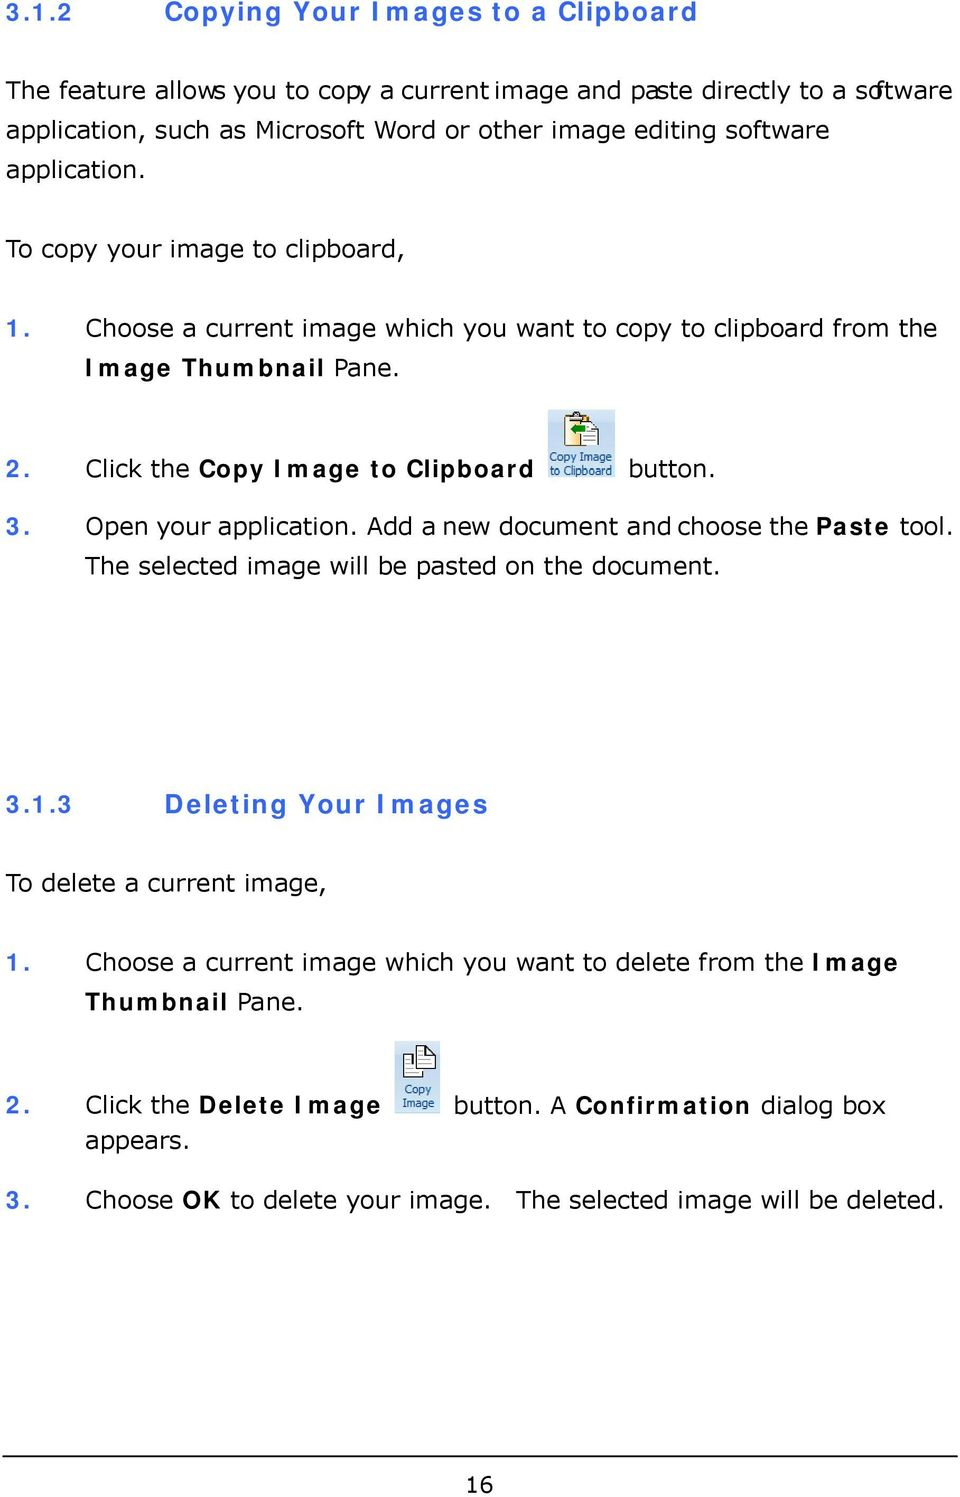 Open your application. Add a new document and choose the Paste tool. The selected image will be pasted on the document. 3.1.3 Deleting Your Images To delete a current image, 1.